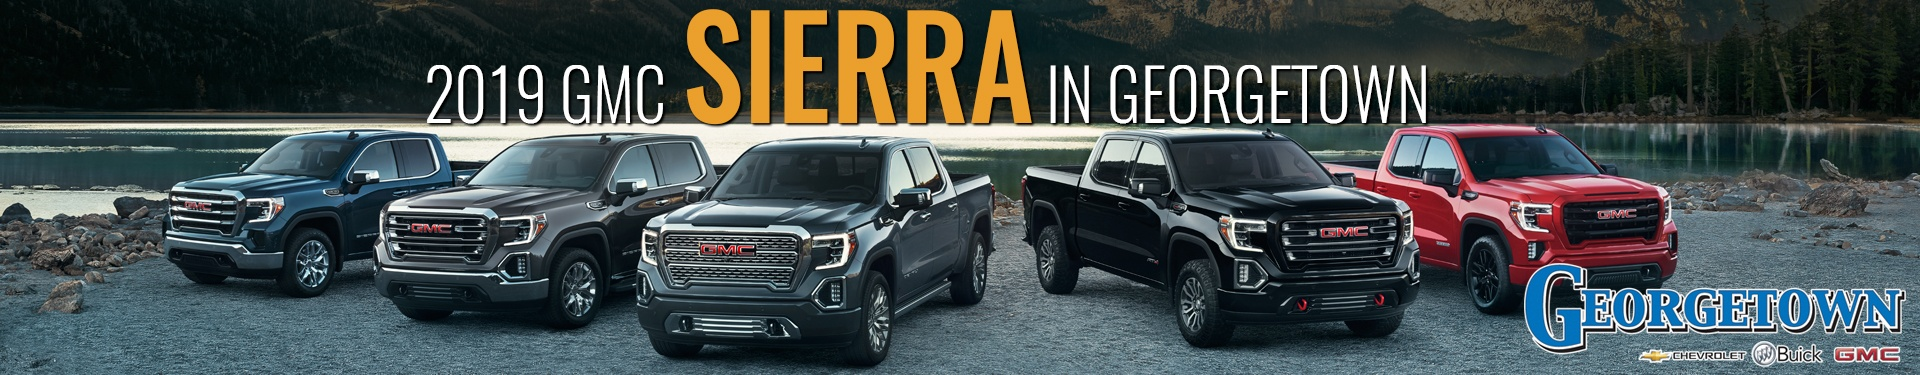 New Trucks in Georgetown. Discover the 2019 Chevrolet Silverado in Georgetown and the Greater Toronto Area from Georgetown Chevrolet.